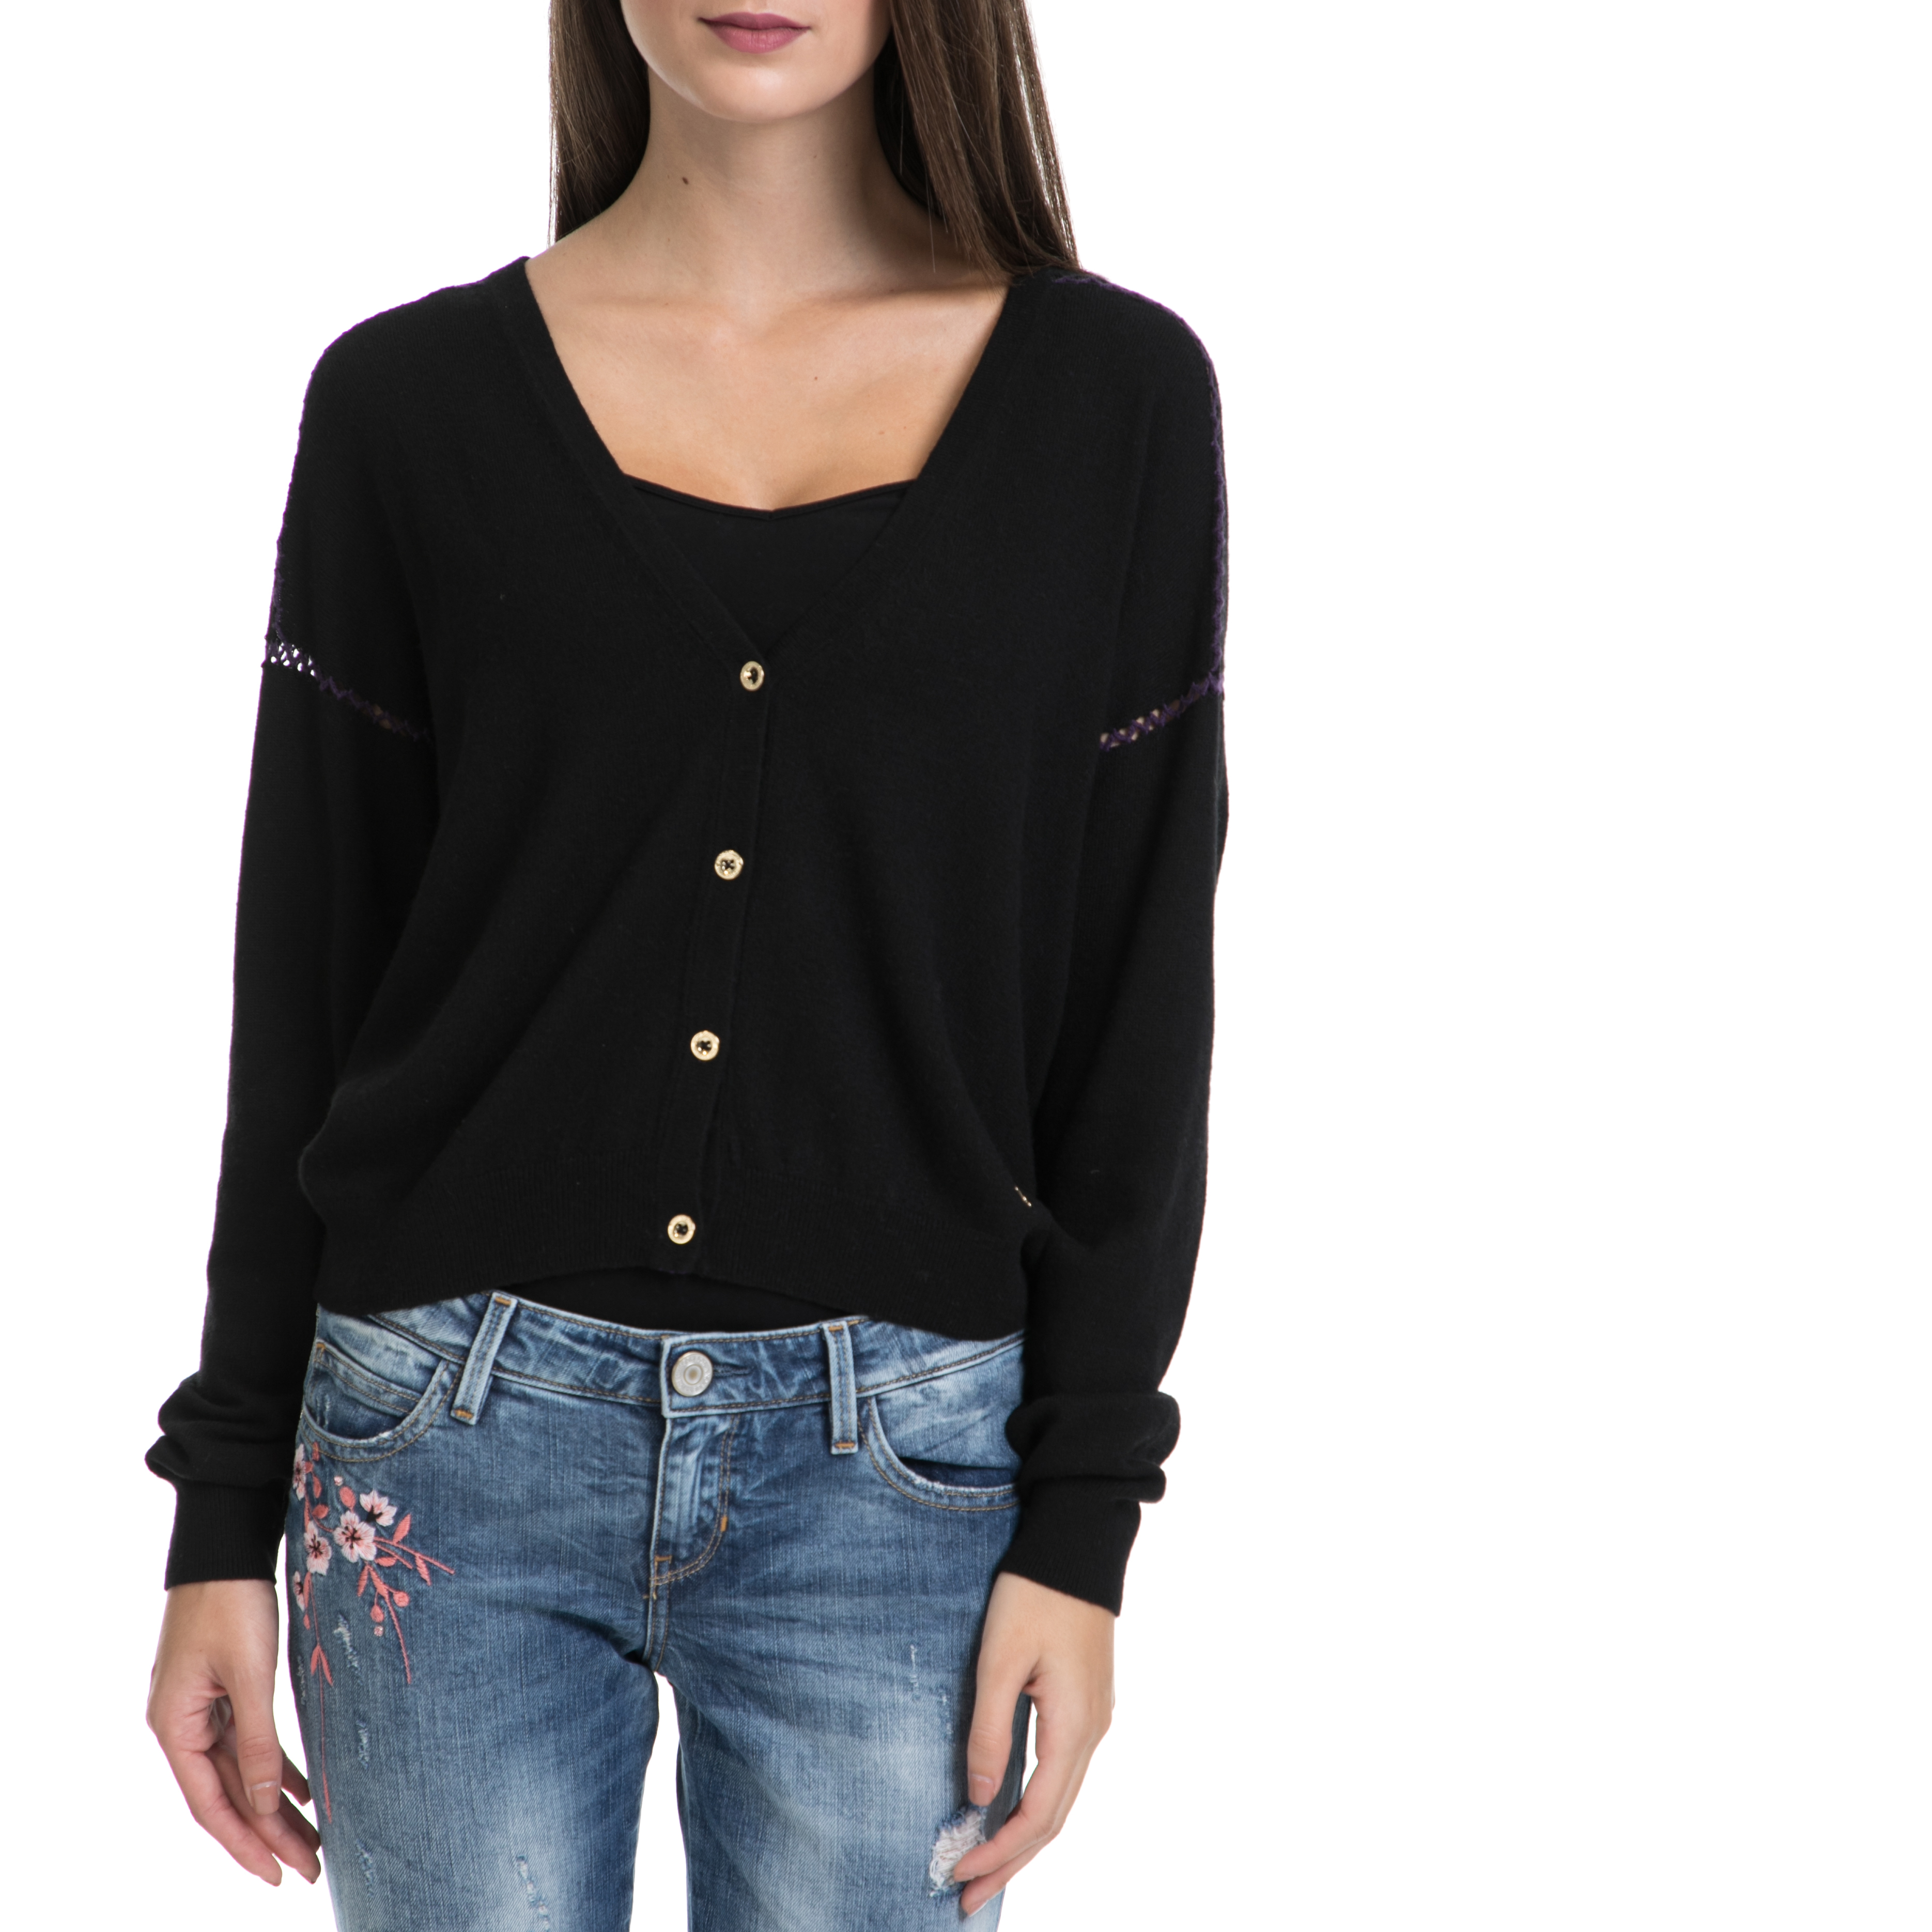 JUICY COUTURE – Γυναικεία ζακέτα JUICY COUTURE μαύρη